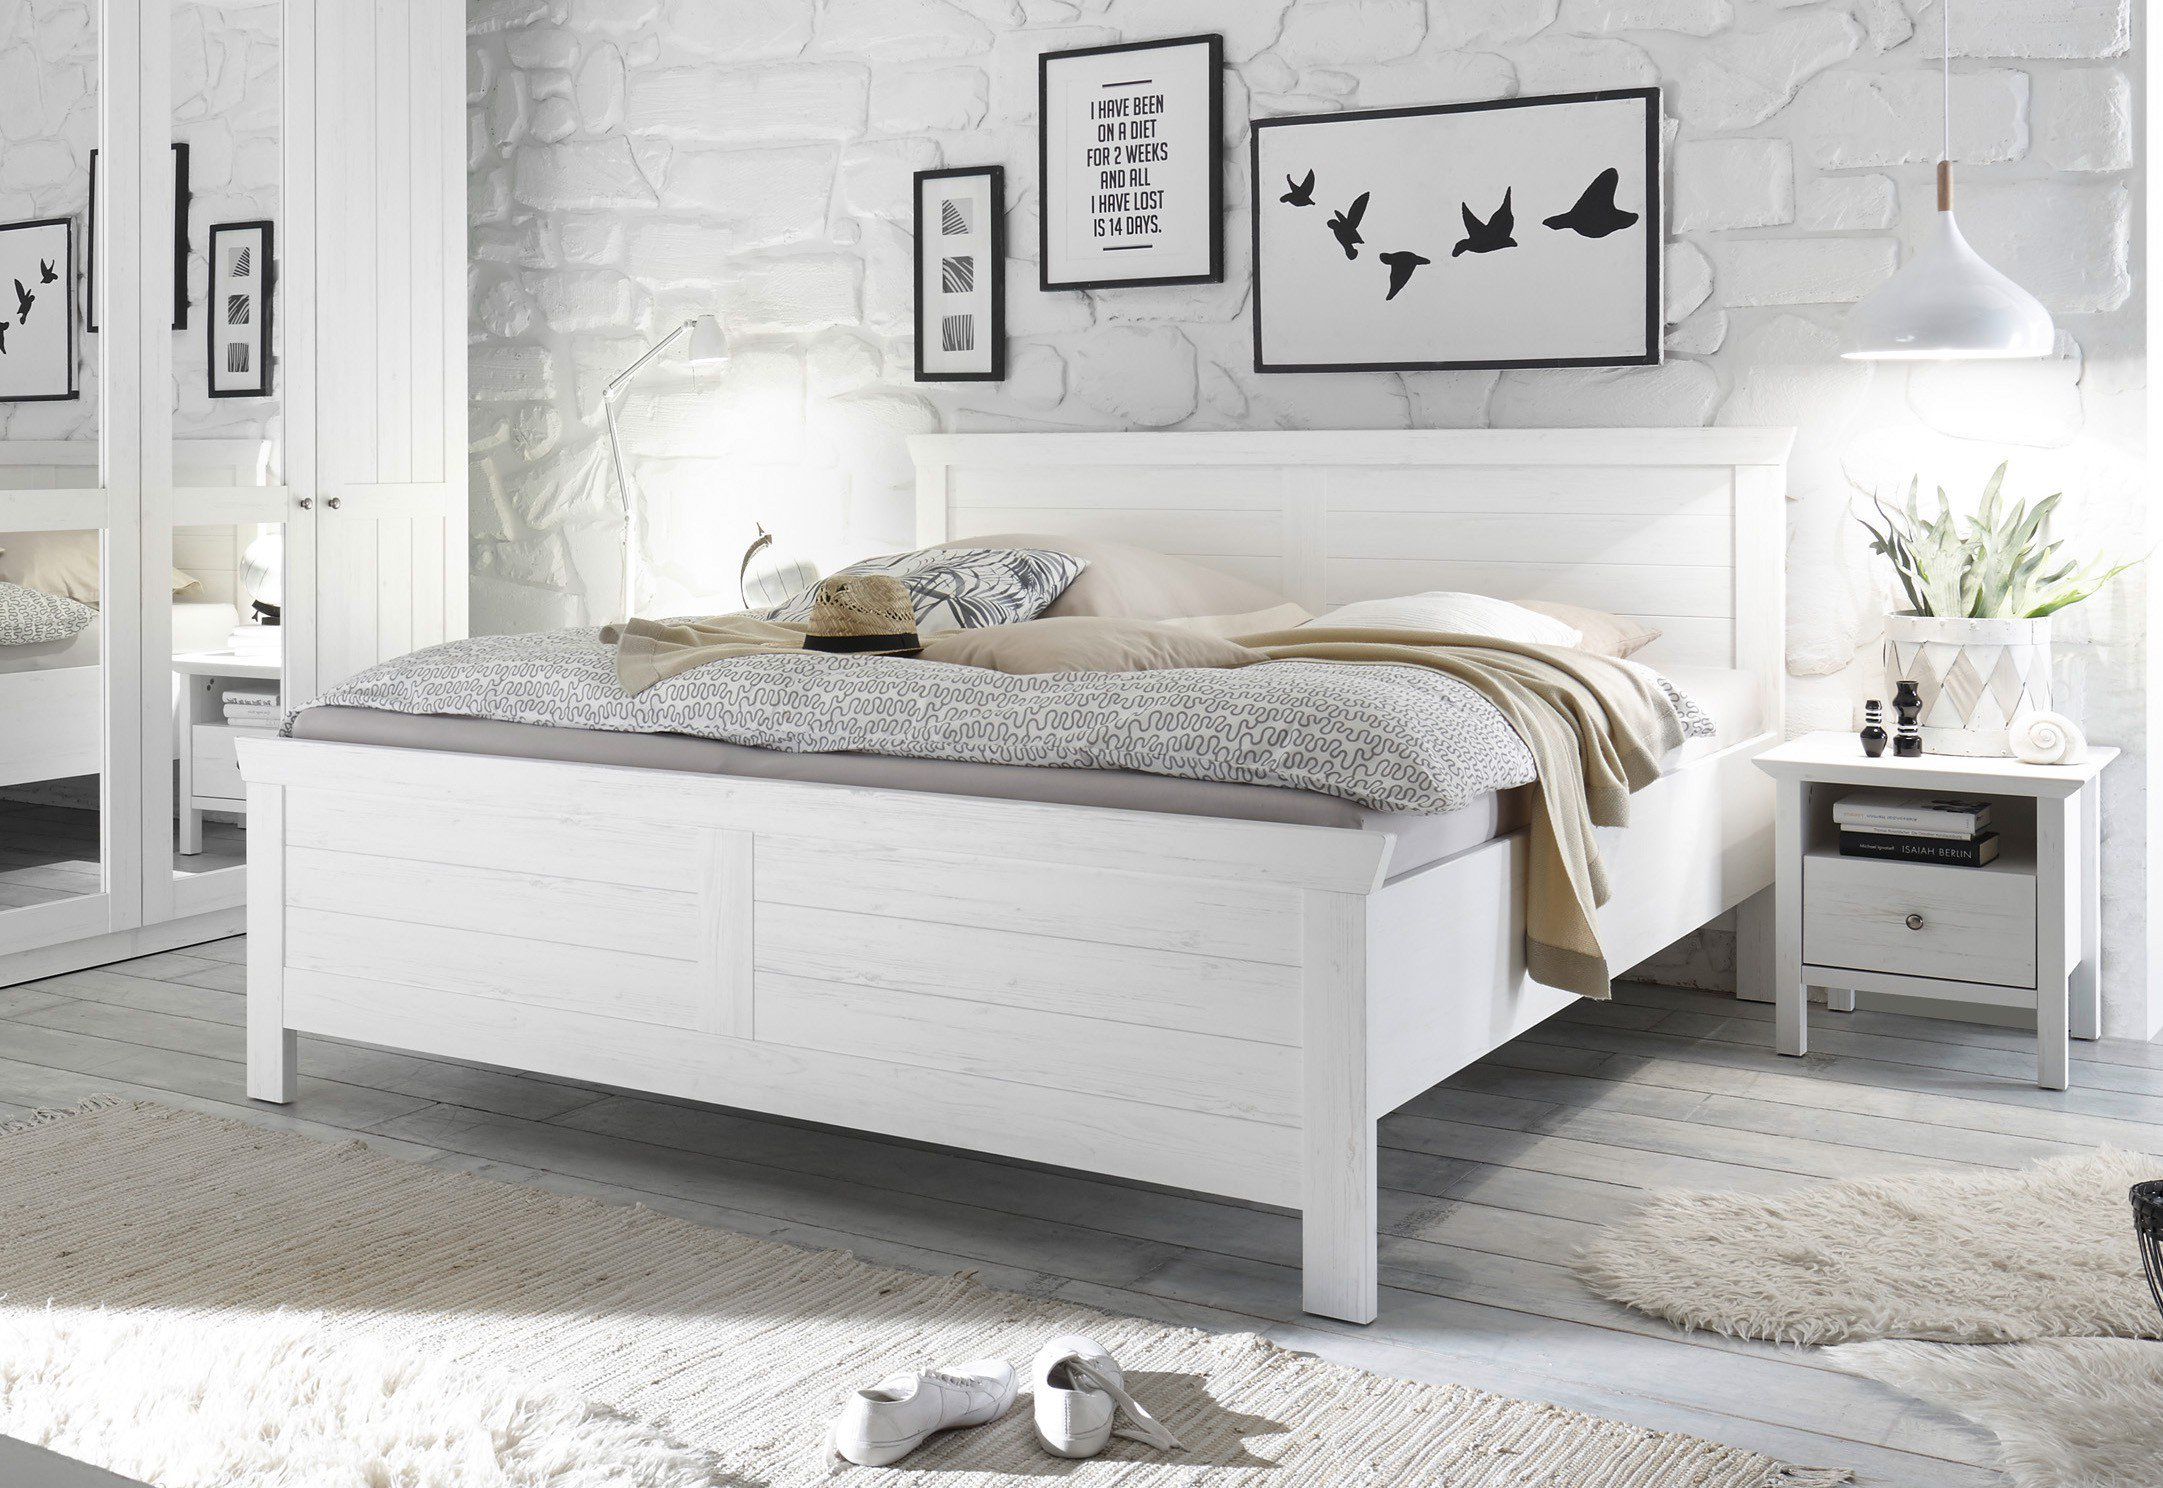 schlafkontor bellevue bett landhaus modern m bel letz ihr online shop. Black Bedroom Furniture Sets. Home Design Ideas